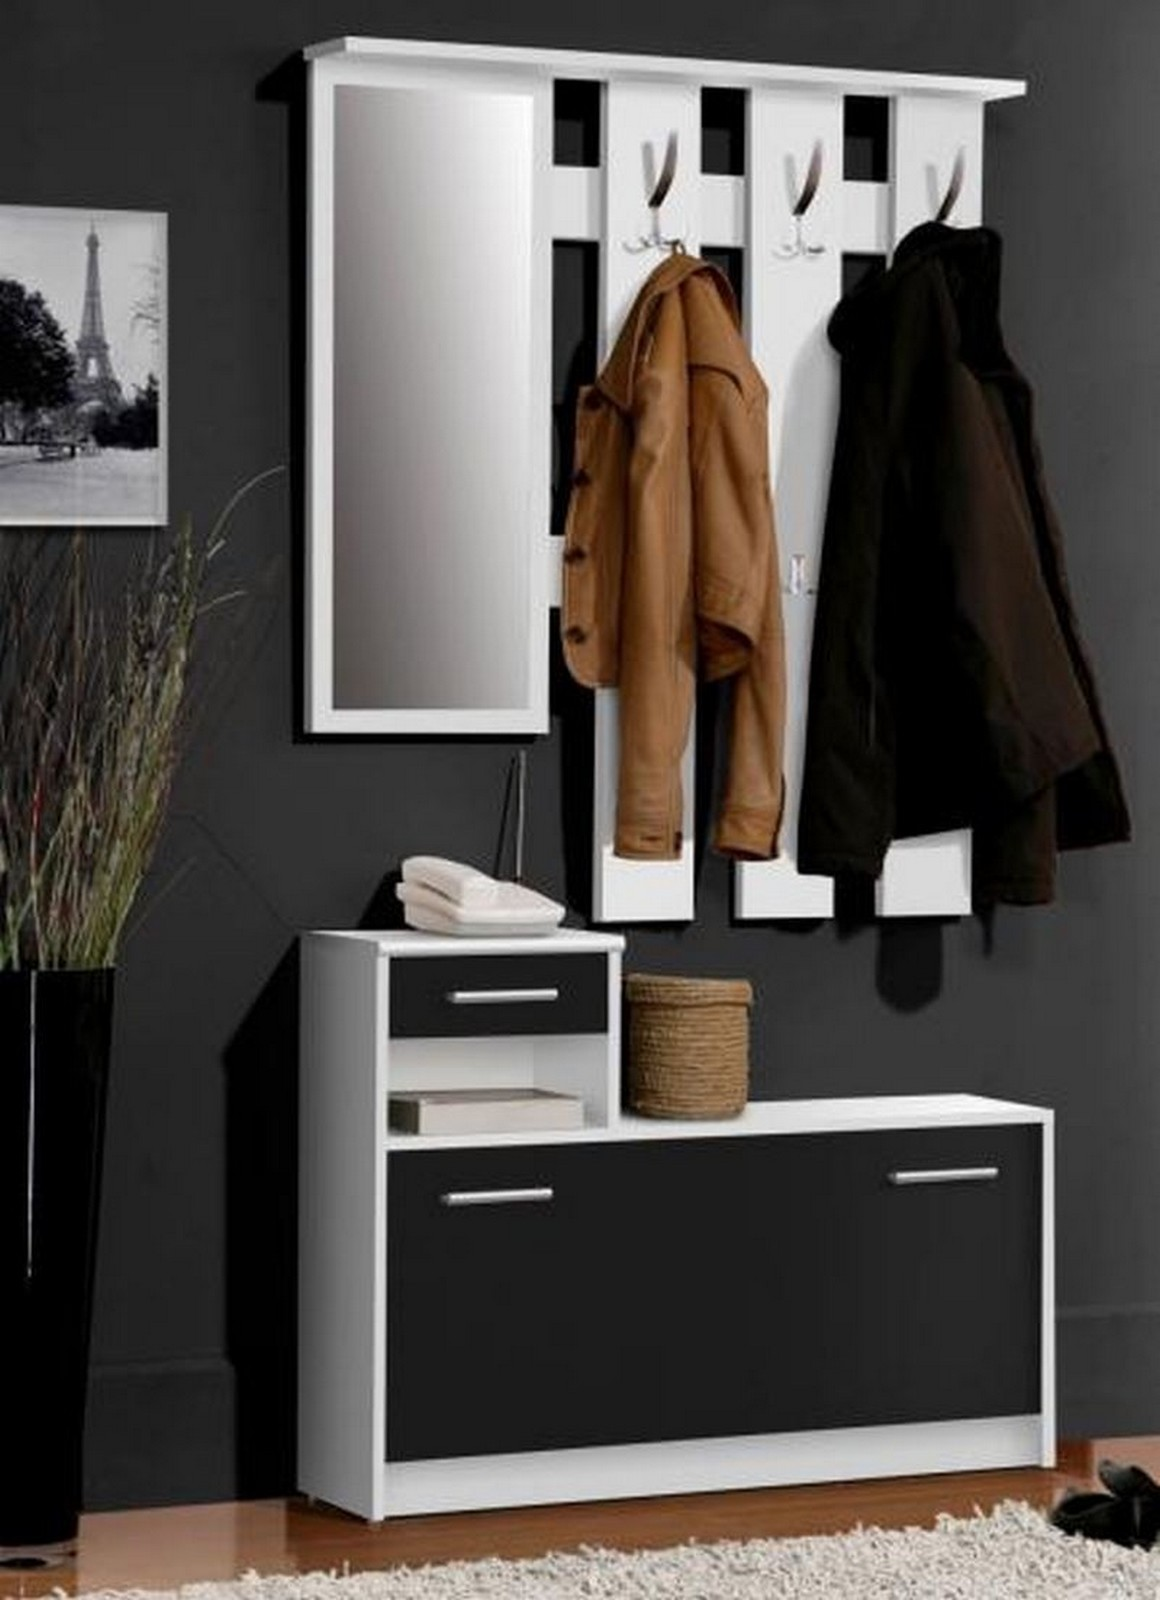 flurgarderobe einebinsenweisheit. Black Bedroom Furniture Sets. Home Design Ideas